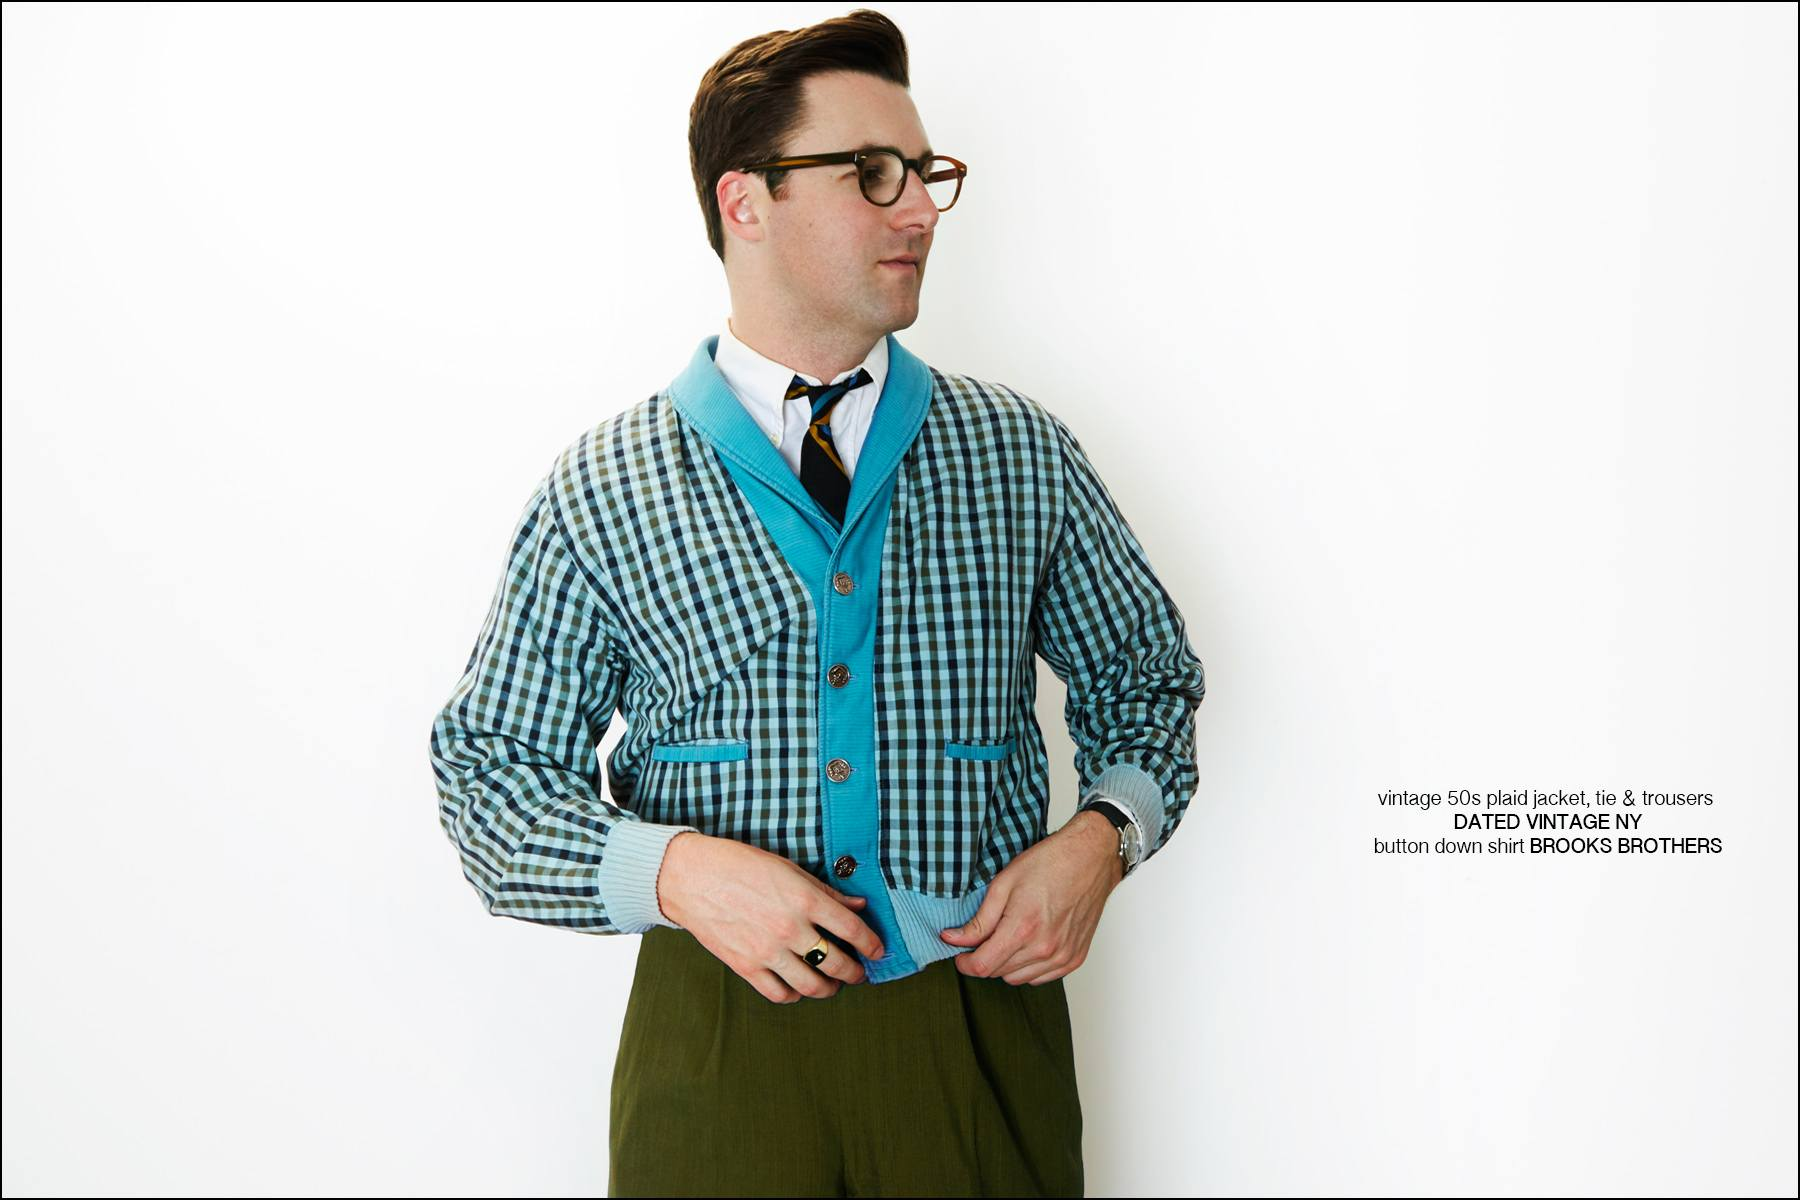 Nick Waterhouse wears vintage clothing from Dated Vintage NY. Photographed for Ponyboy magazine NY by Alexander Thompson.